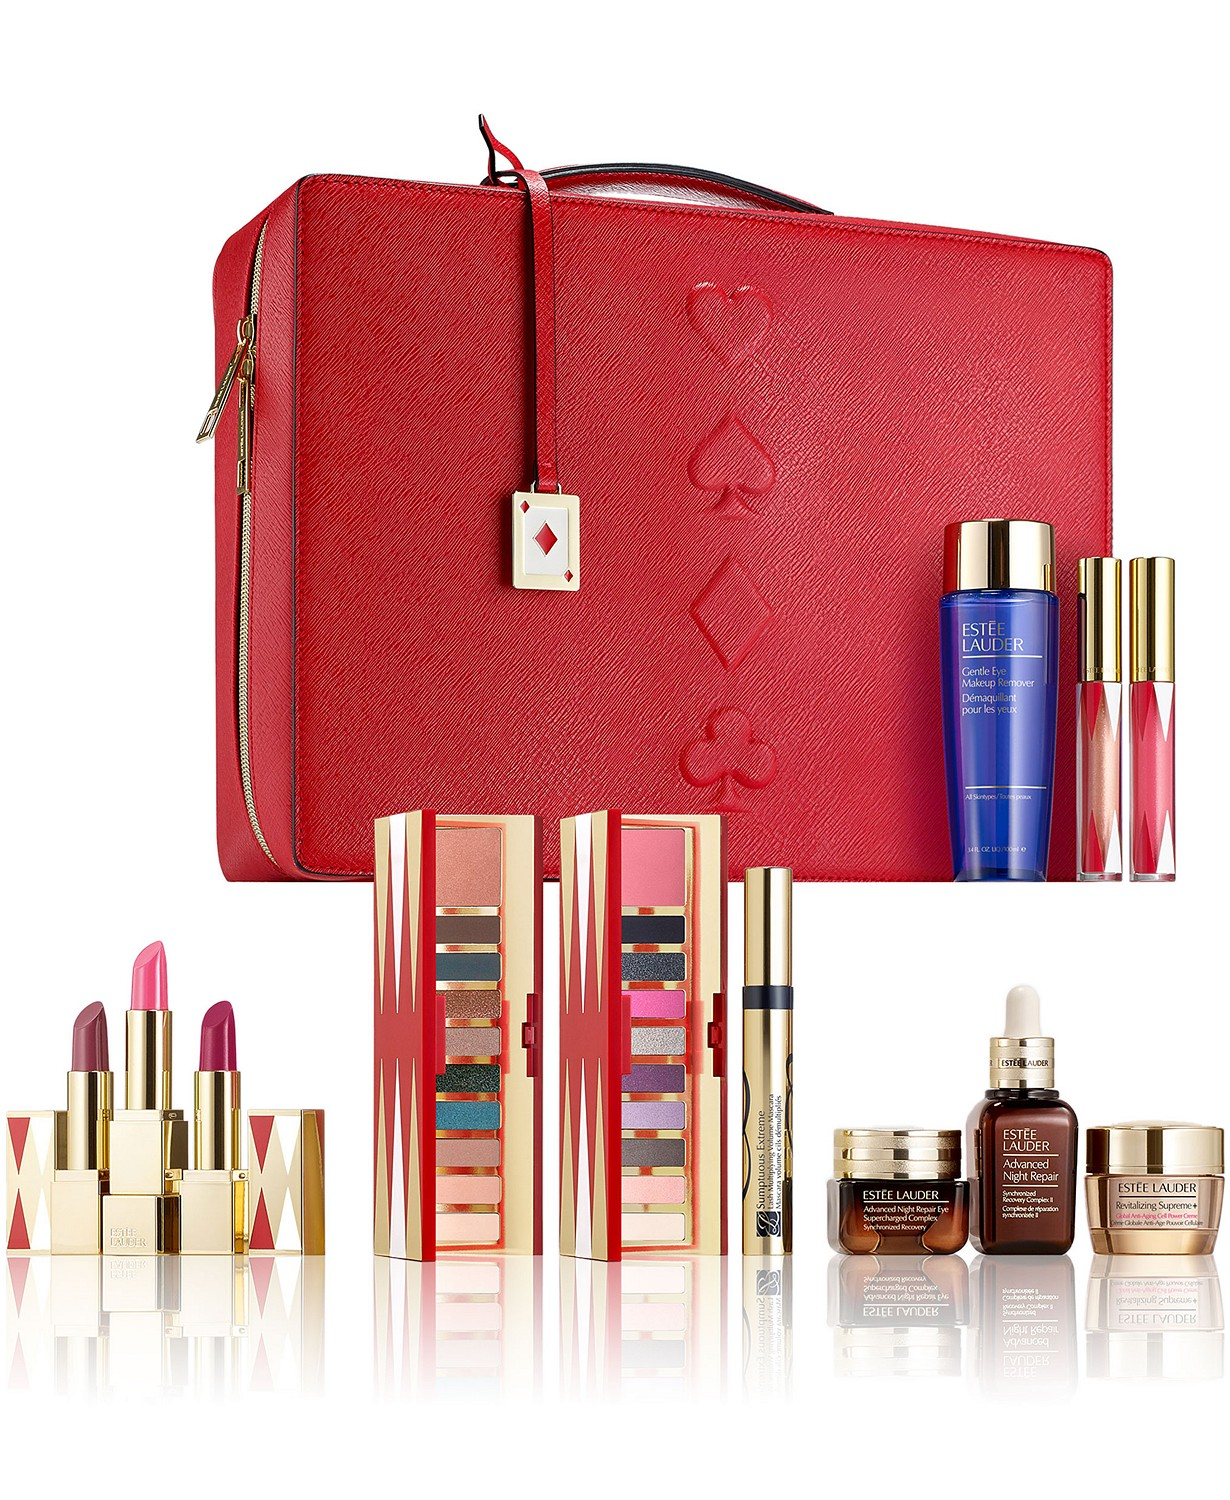 Estée Lauder 31 Beauty Essentials for the Price of One - Only $70 with any $45 Estée Lauder purchase. A $455 Value